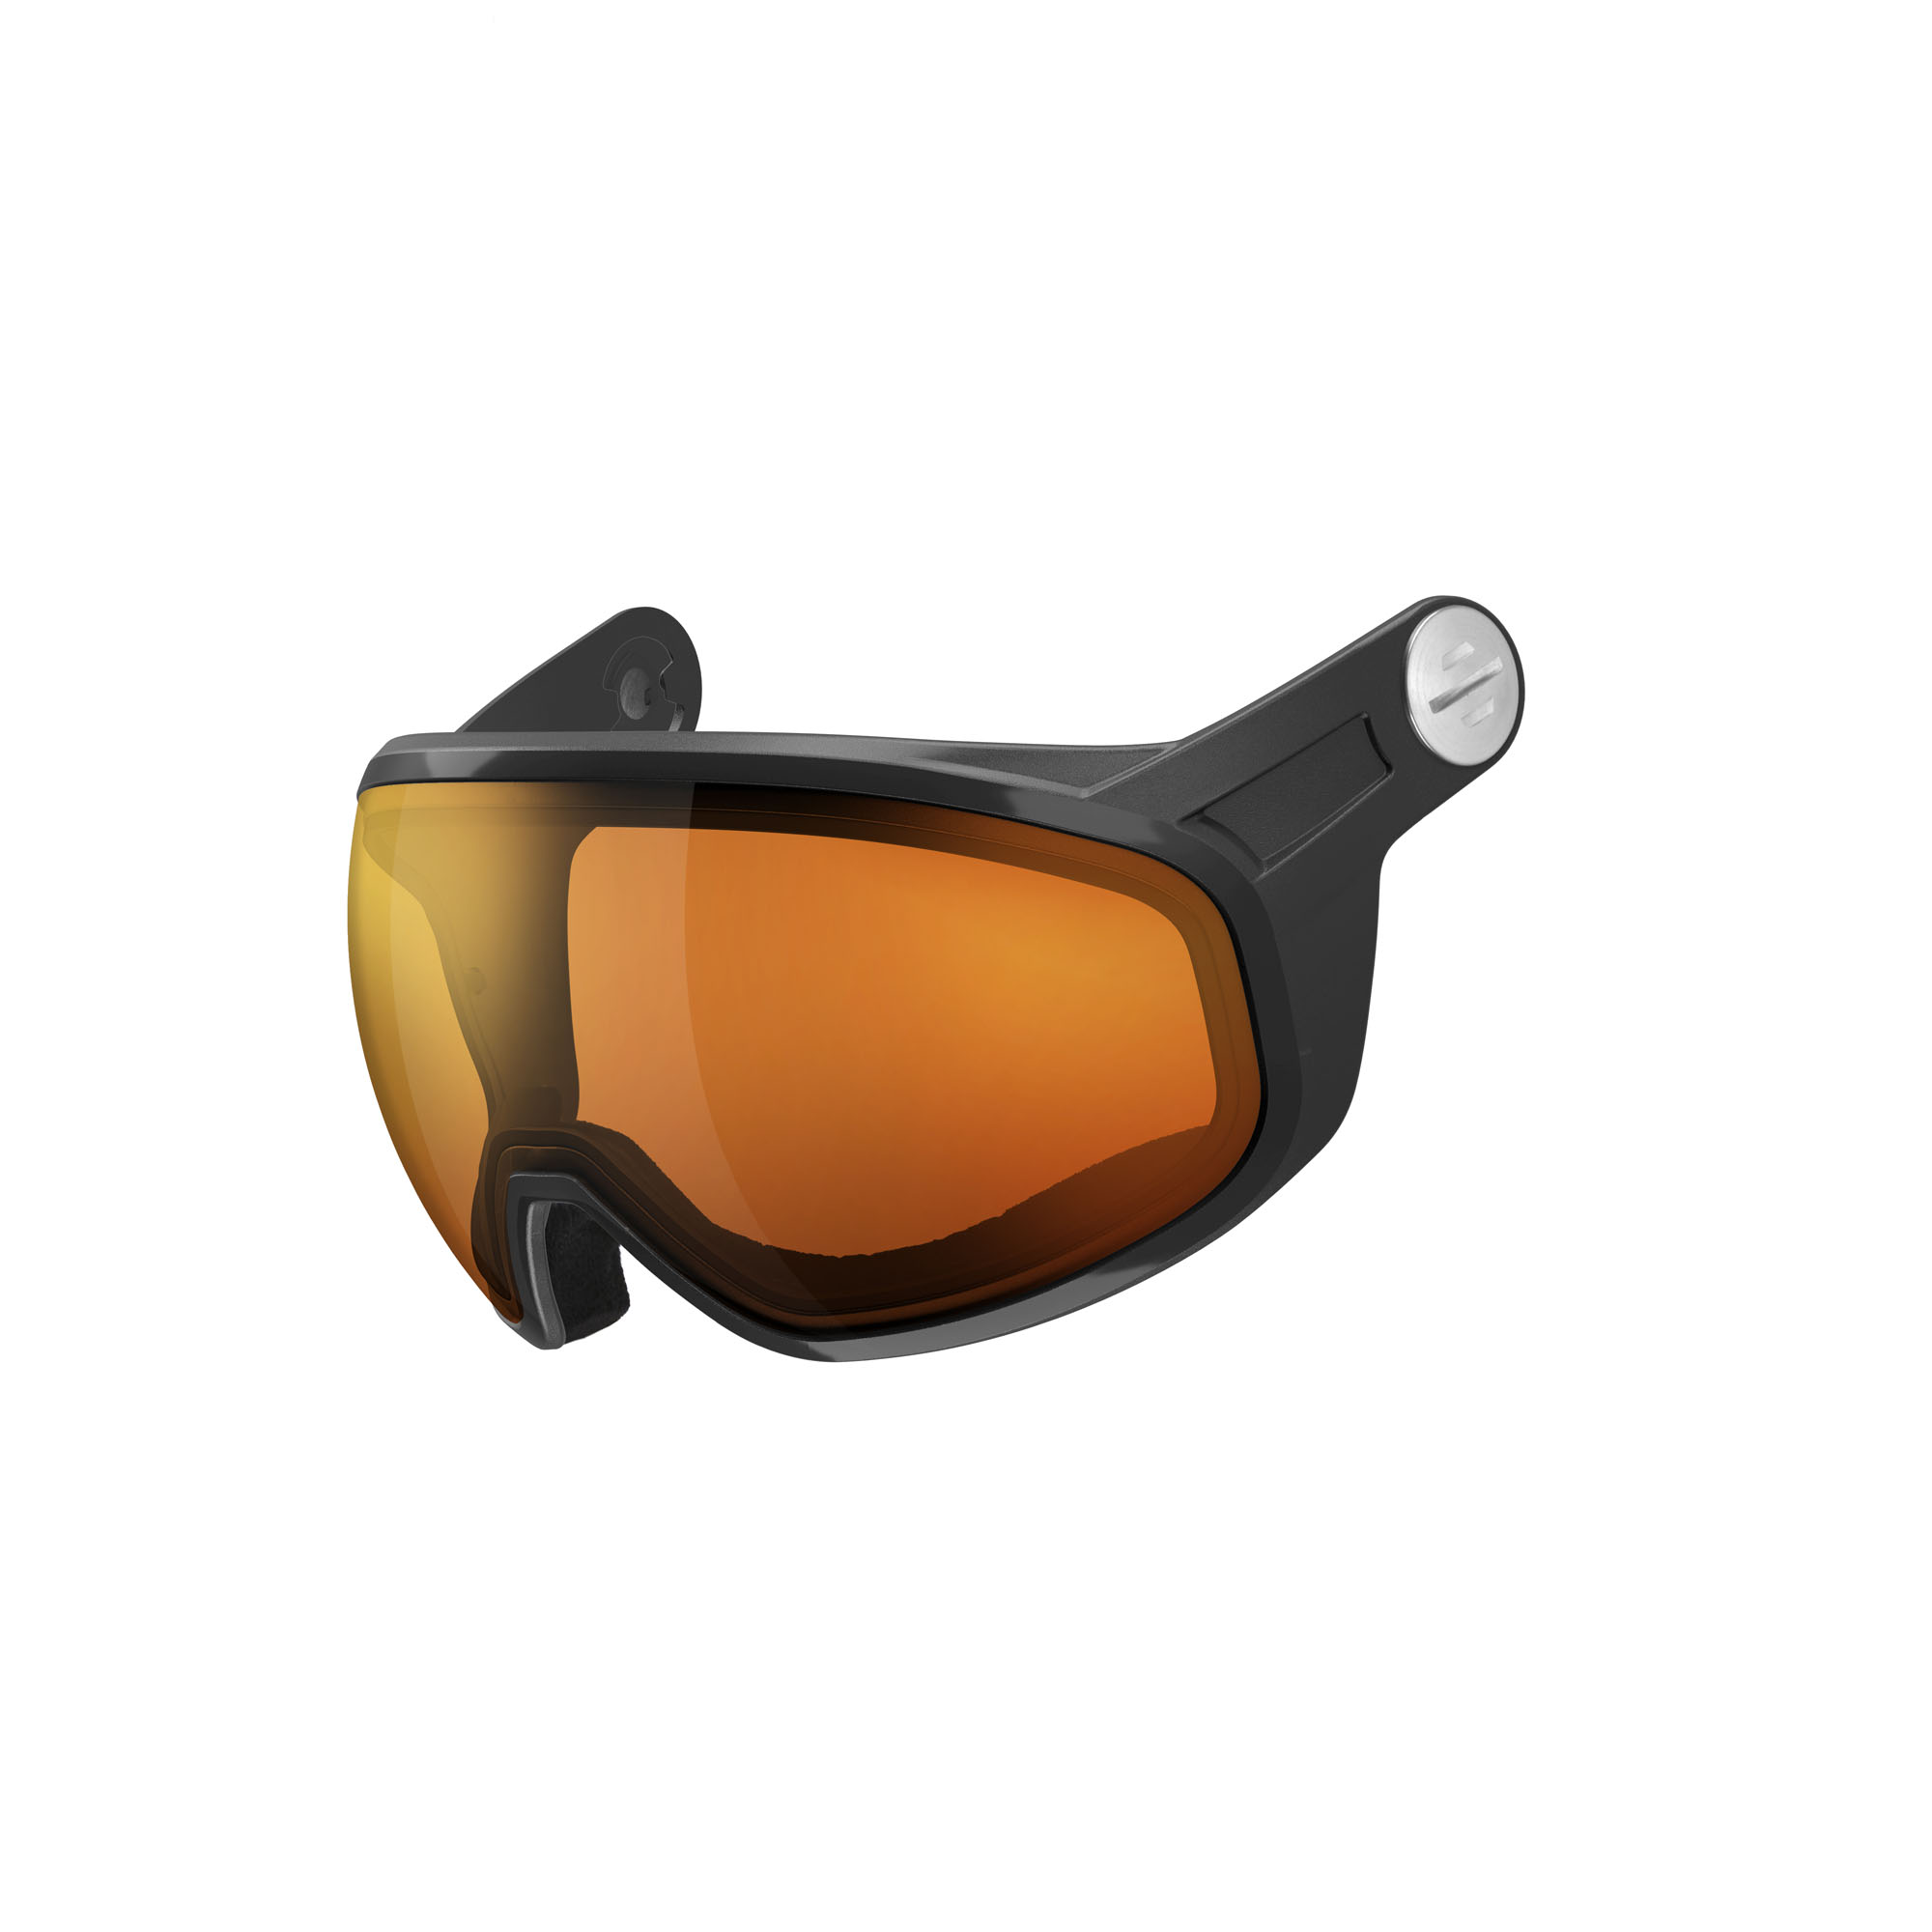 7013 Polar Adaptive orange black.jpg